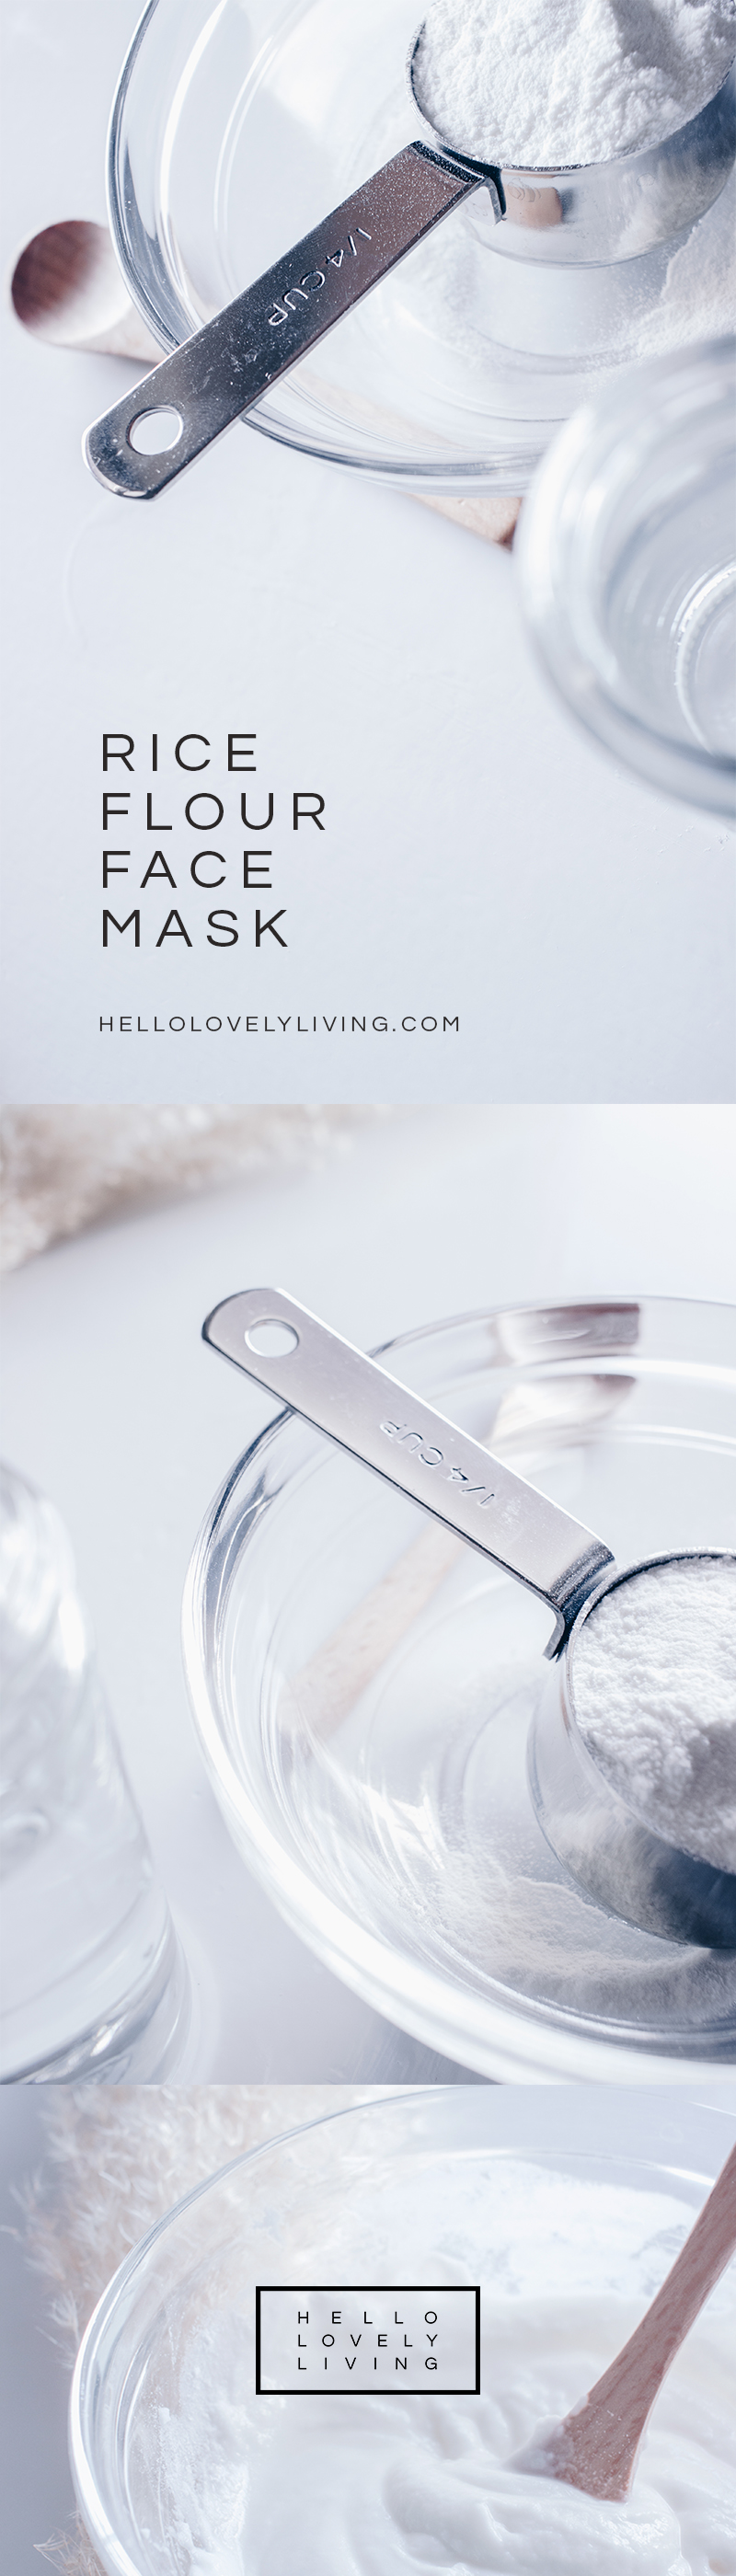 HelloLovelyLiving.com | DIY Rice Flour Face Mask - The Secret To Brighter Skin